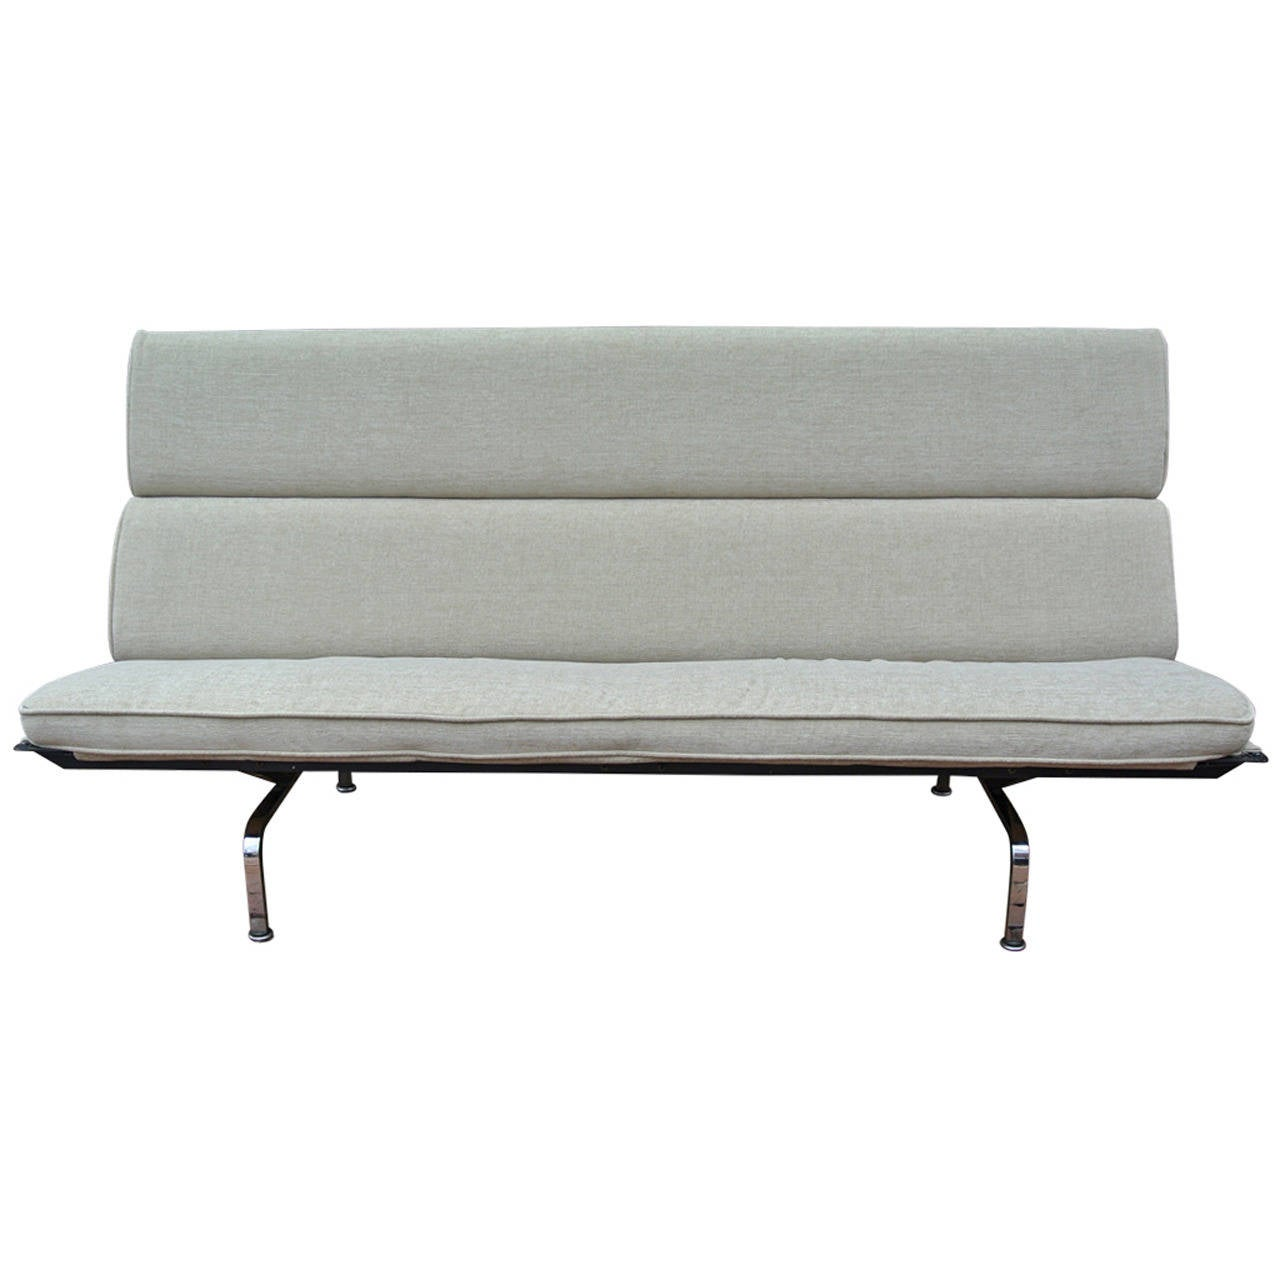 Herman Miller Sofas 51 For At 1stdibs Rh Com Sofa Replica